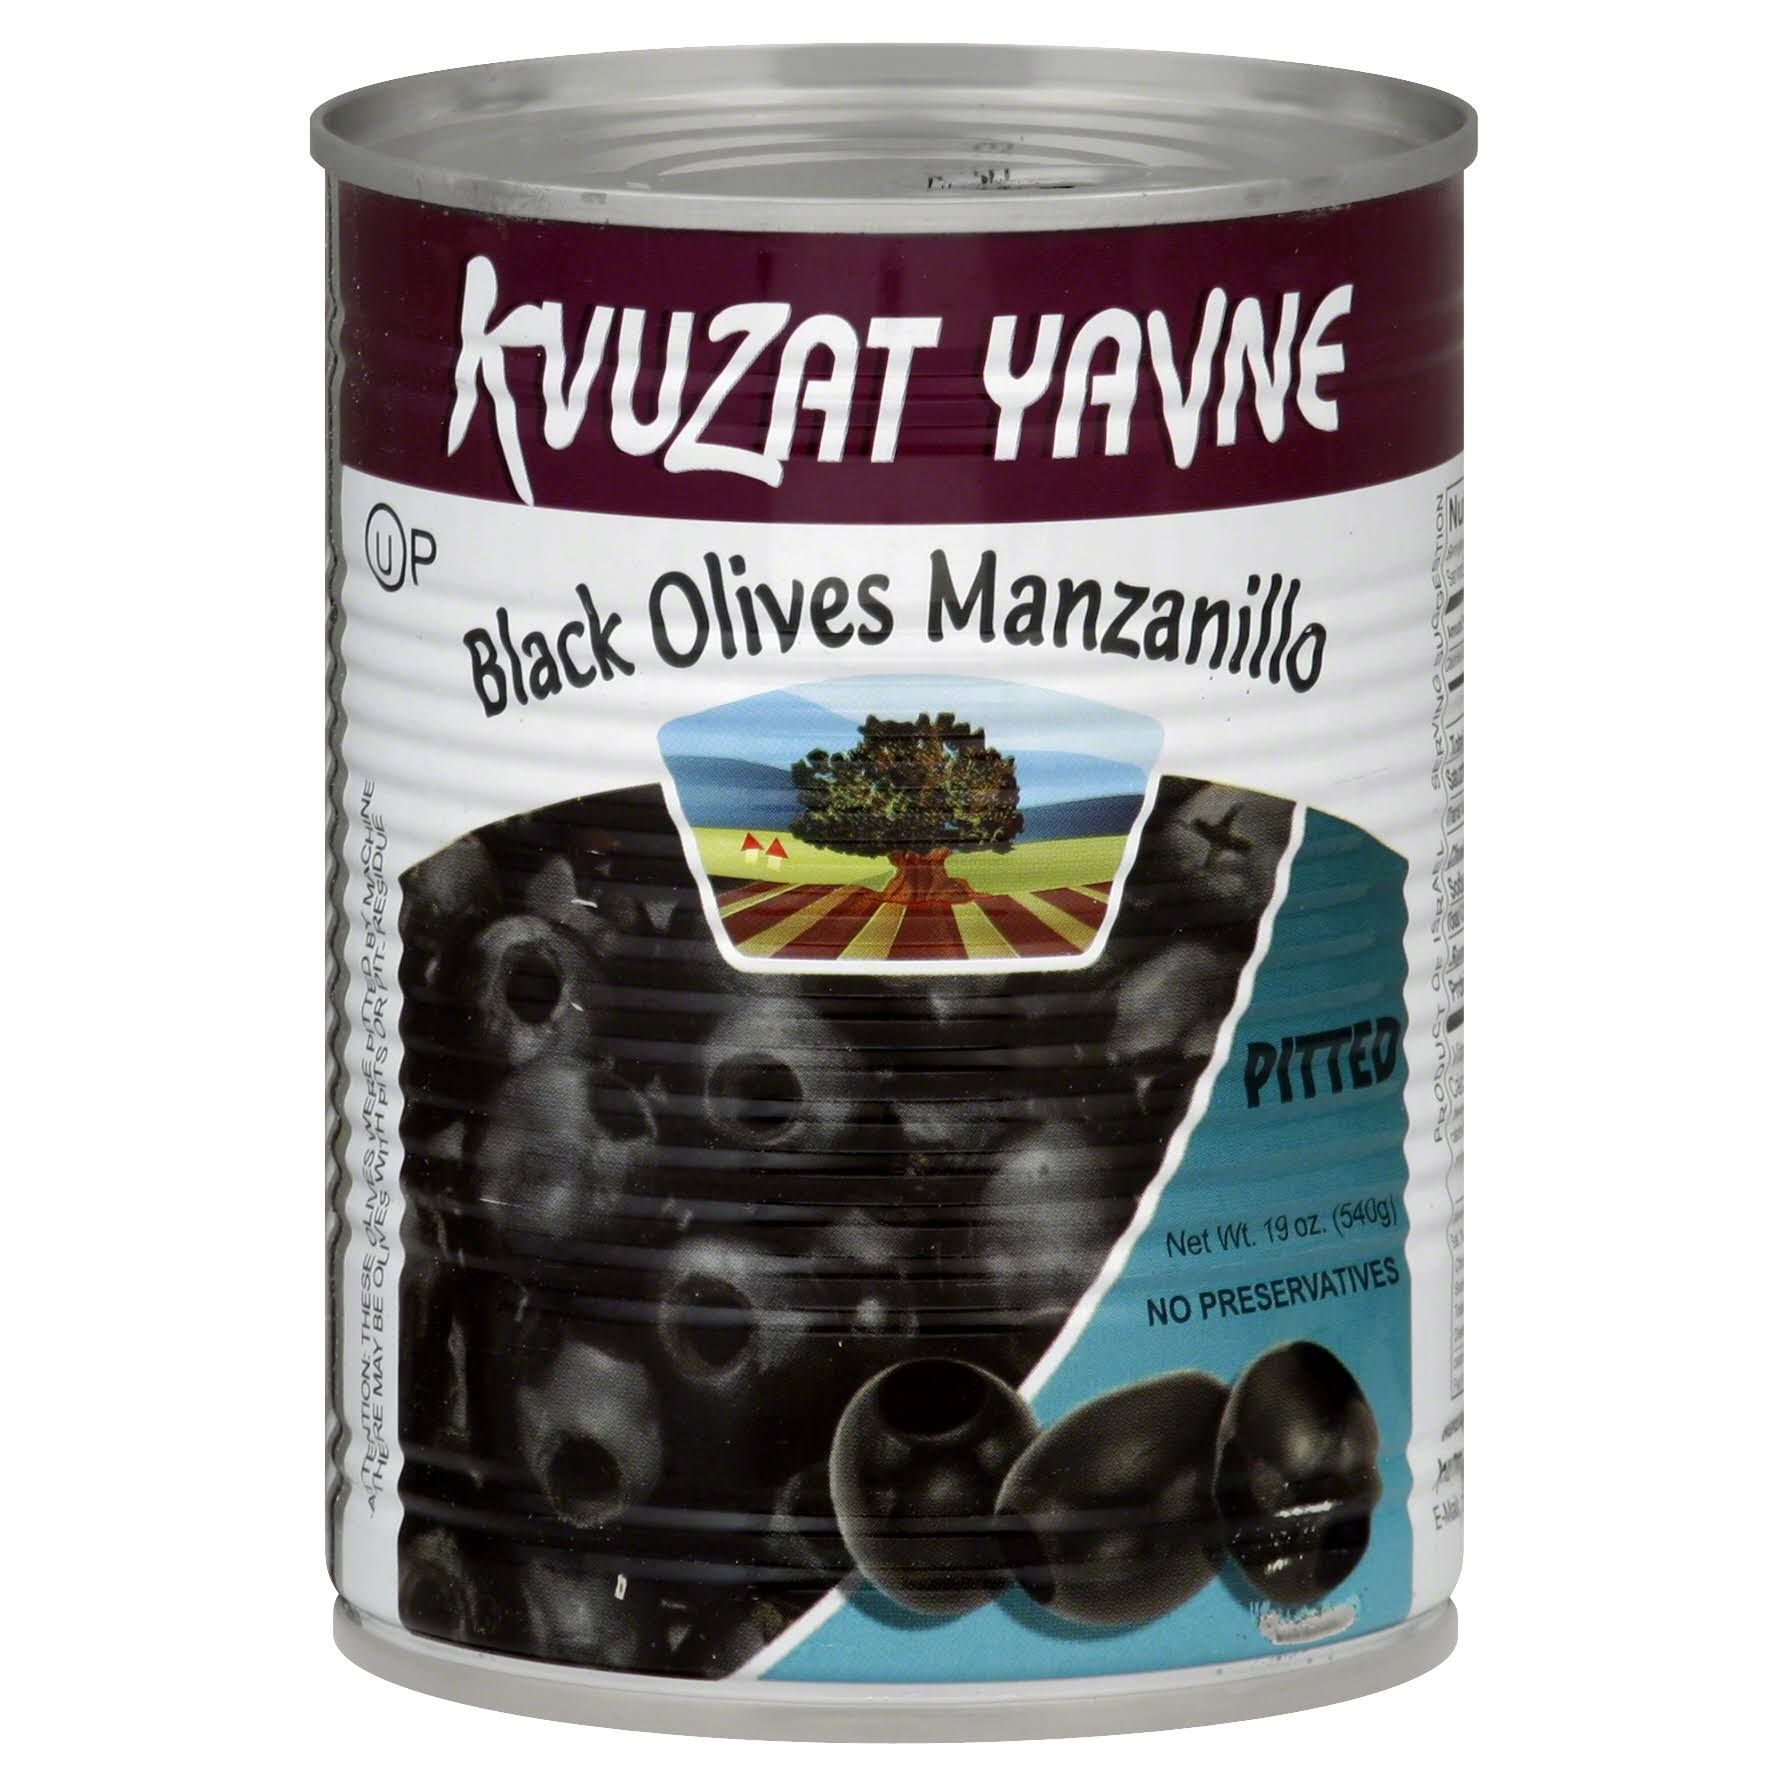 Kvuzat Yavne Olives, Black, Manzanillo, Pitted - 19 oz